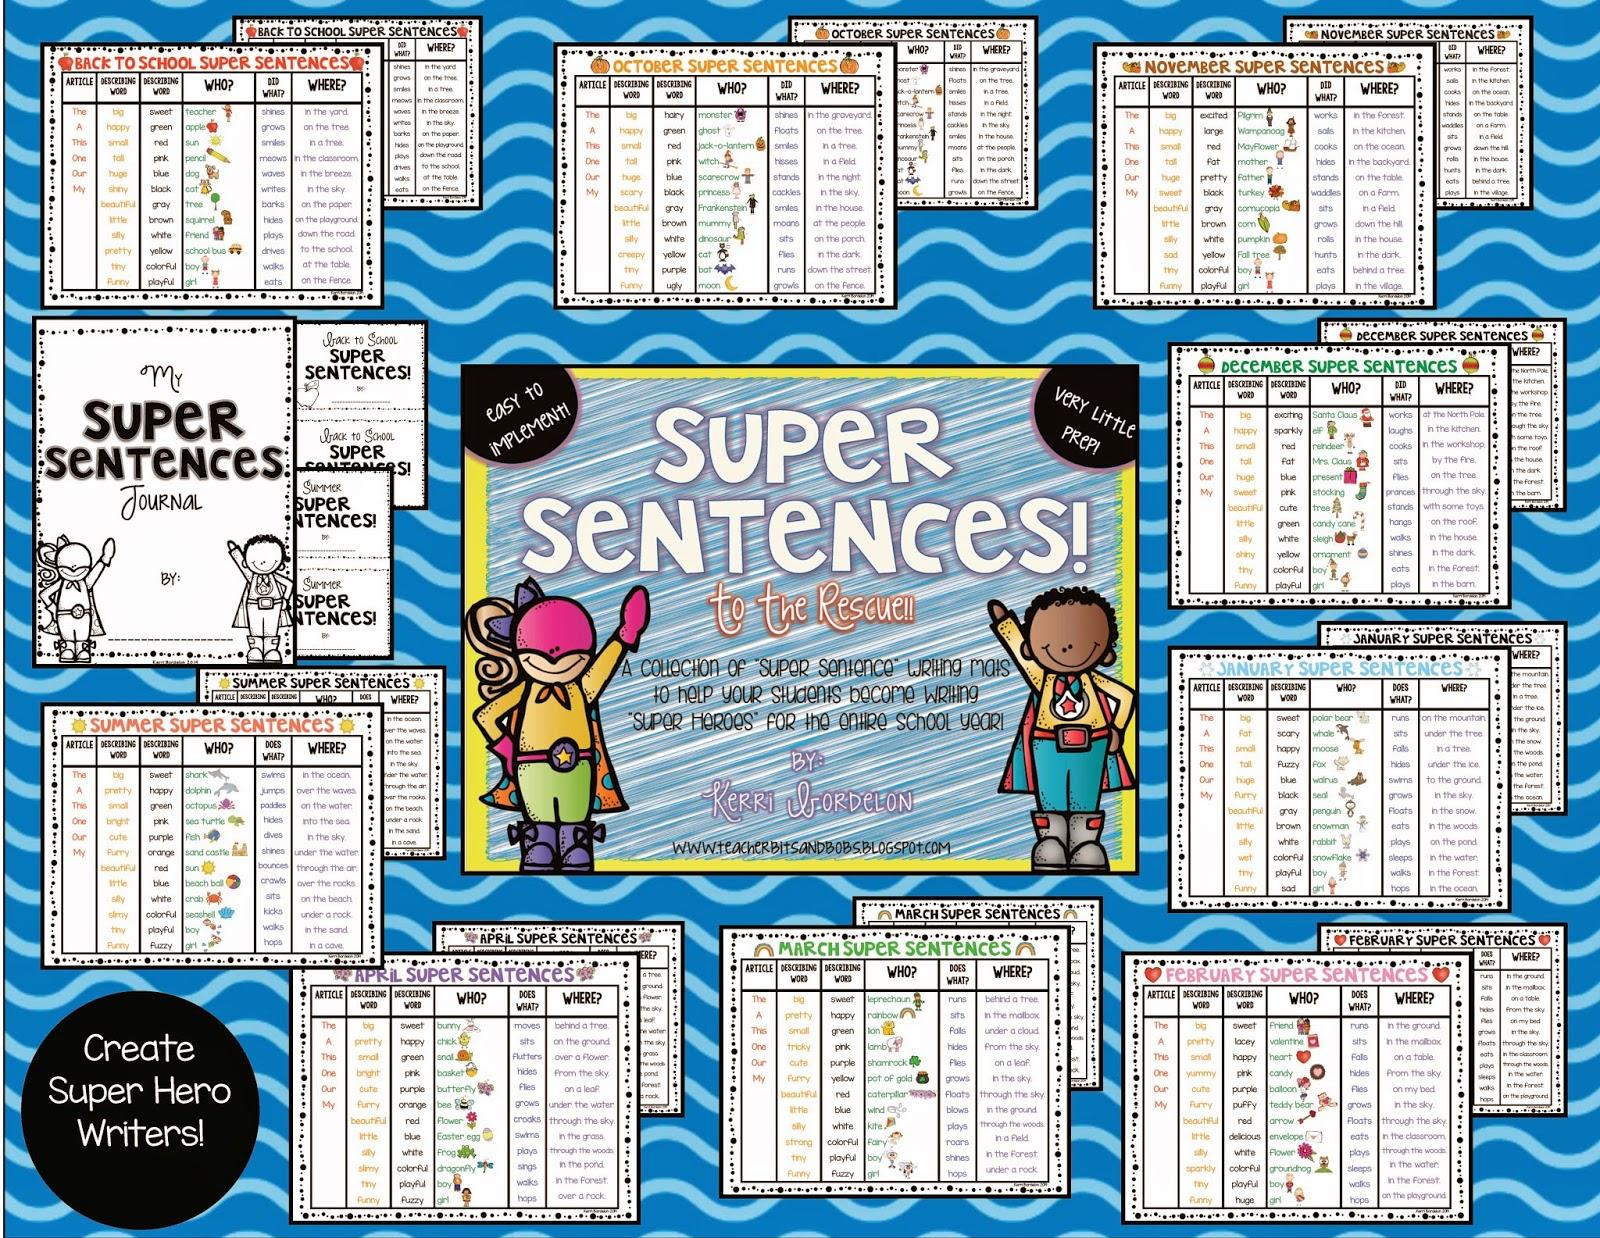 Super Sentence Examples